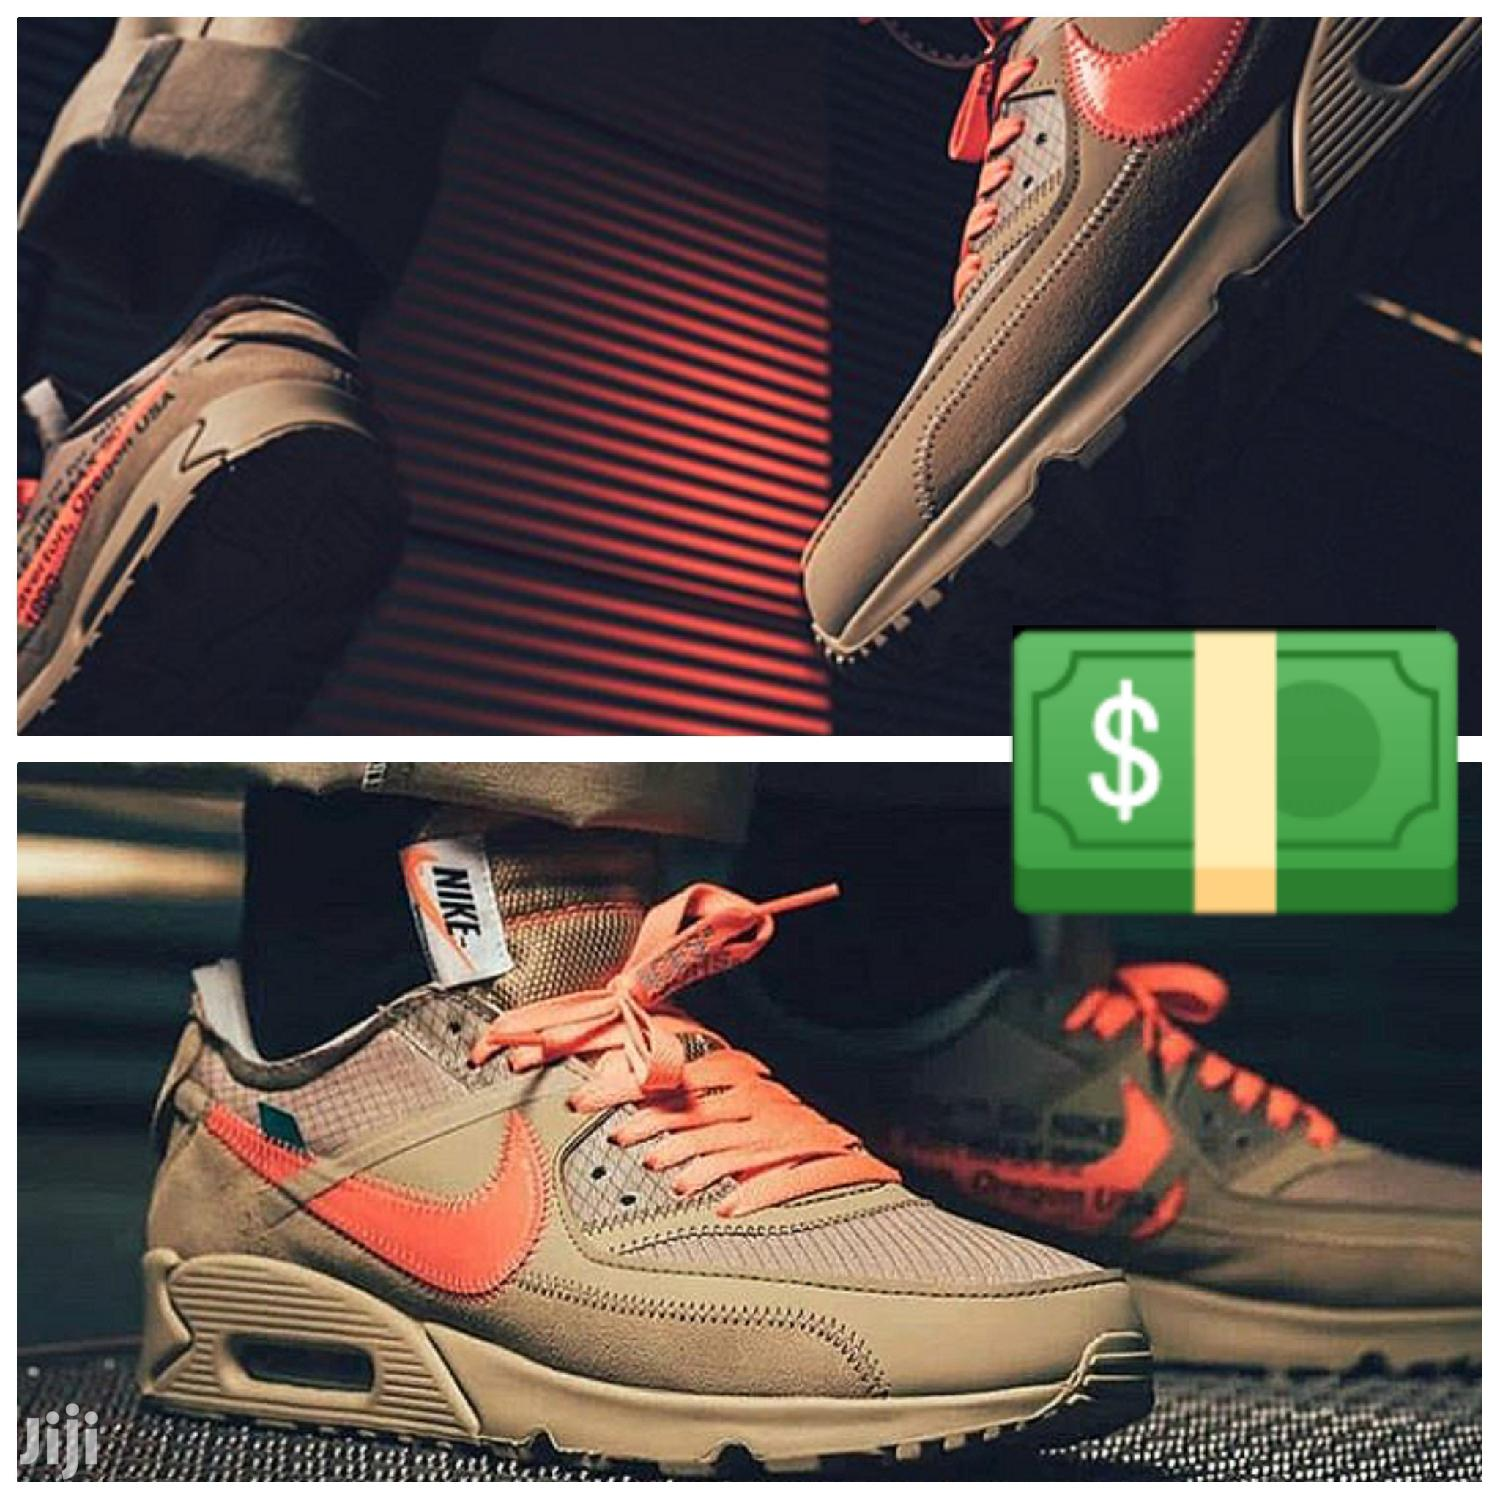 High Quality Nike Air Max 90 Off White | Shoes for sale in Accra Metropolitan, Greater Accra, Ghana